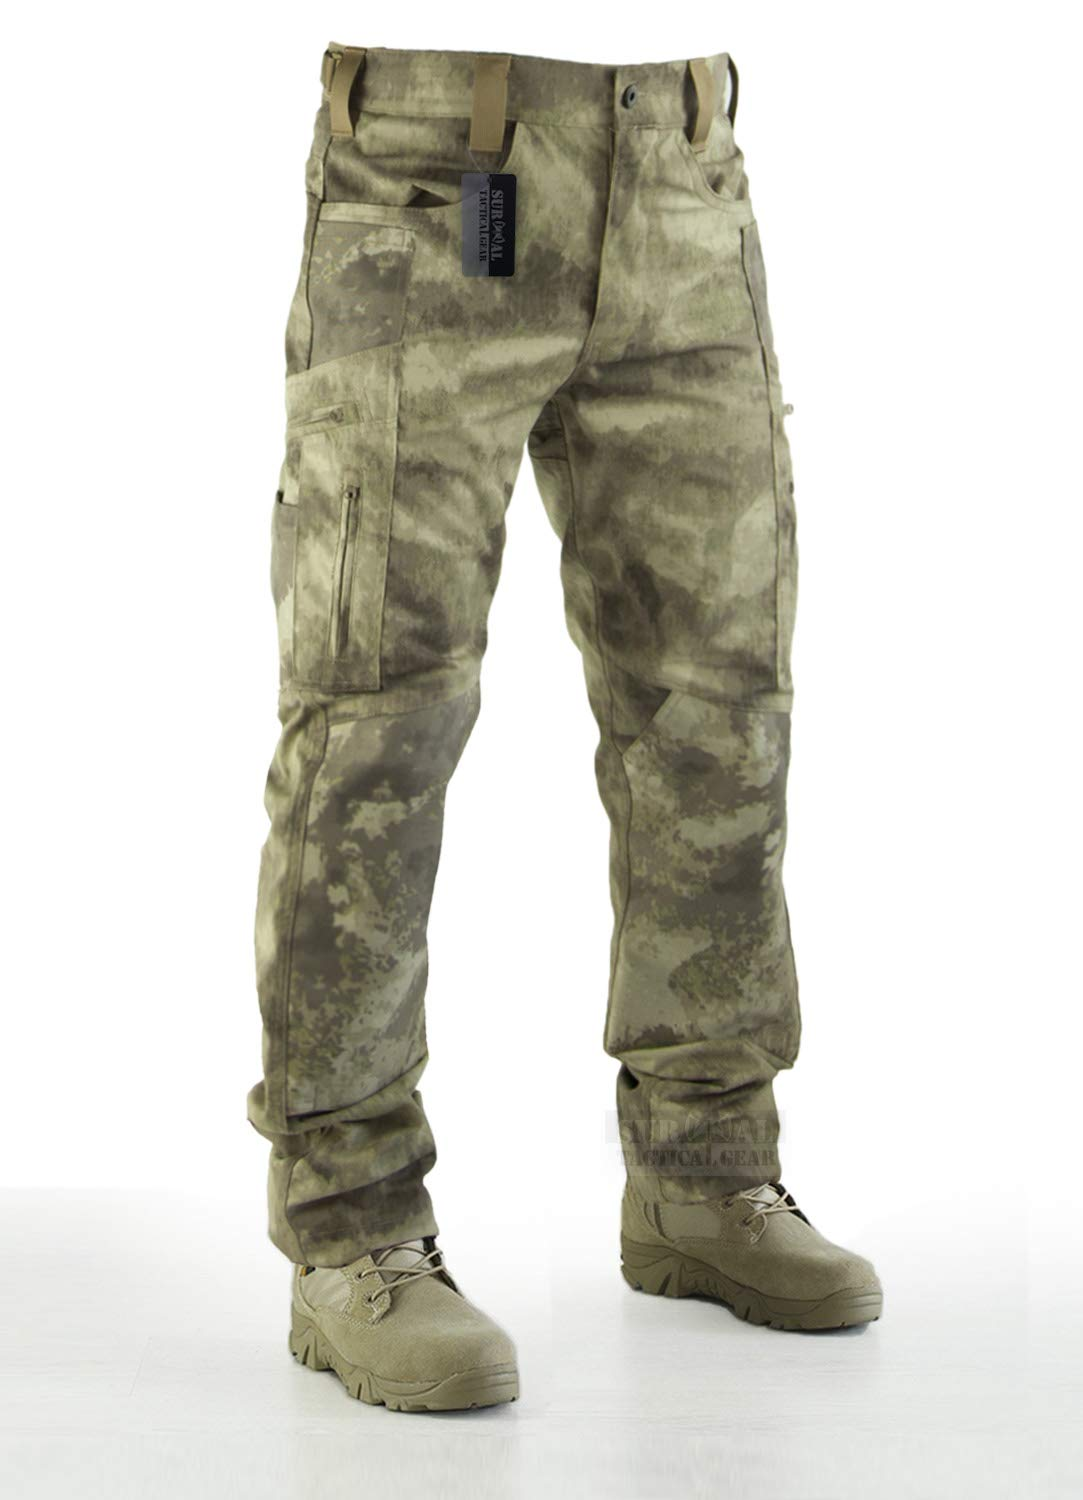 Survival Tactical Gear Men's Ripstop Pants Outdoor Military Camo Cargo Trousers for Camping Hiking